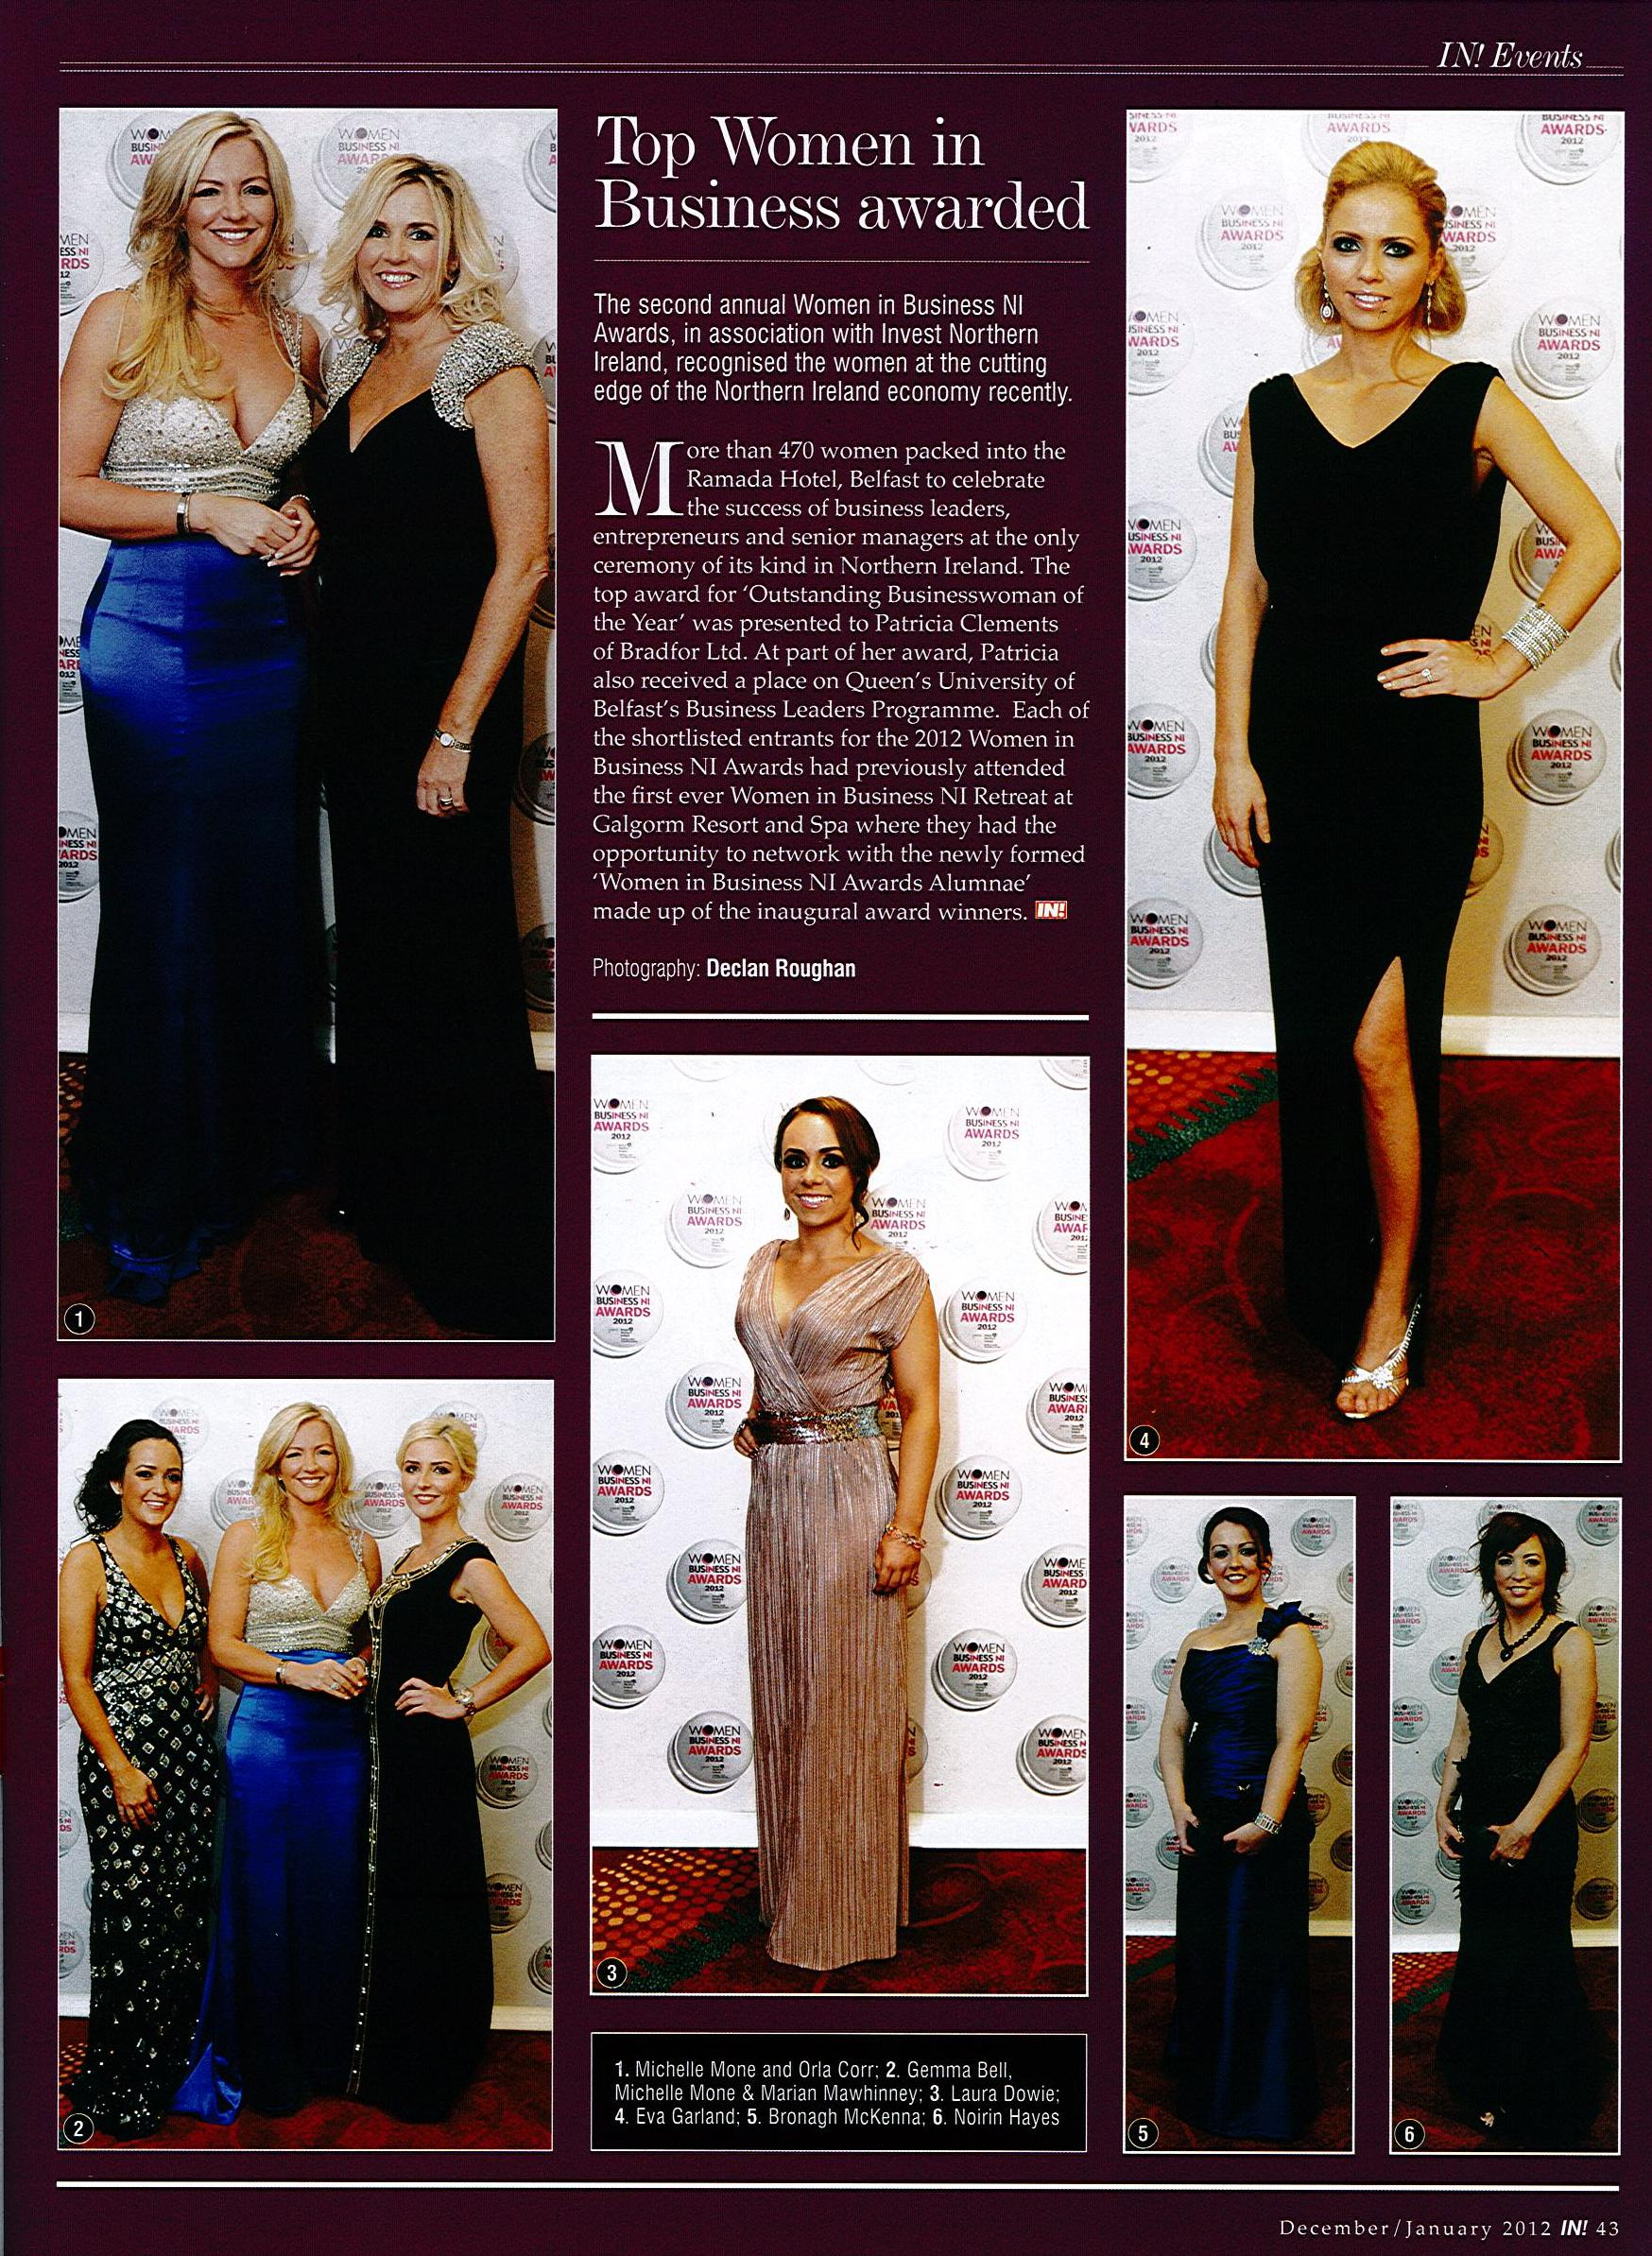 IN-Magazine-Michelle-Mone-Wednesday19thDecember2012-Top-Women-in-Business